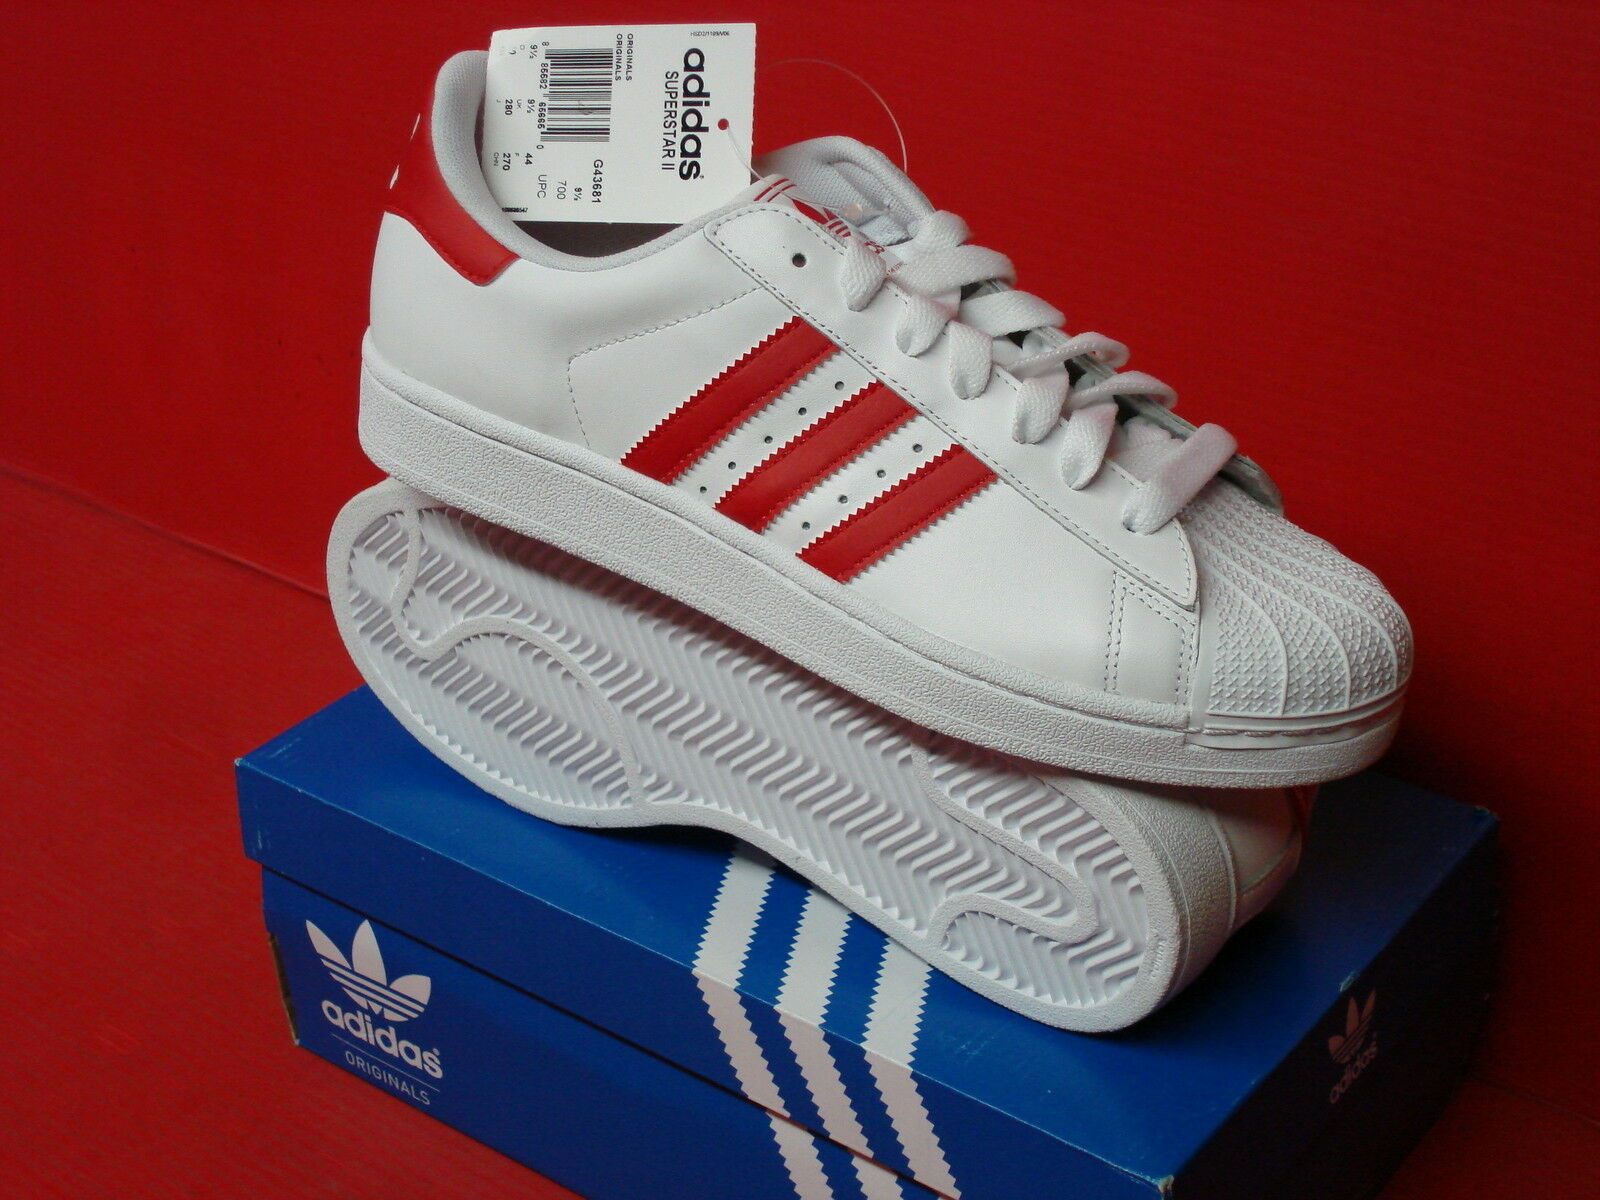 ADIDAS ATHELTIC SUPERSTAR II MENS CASUAL ATHELTIC ADIDAS G17071 G43681 c5f4fa